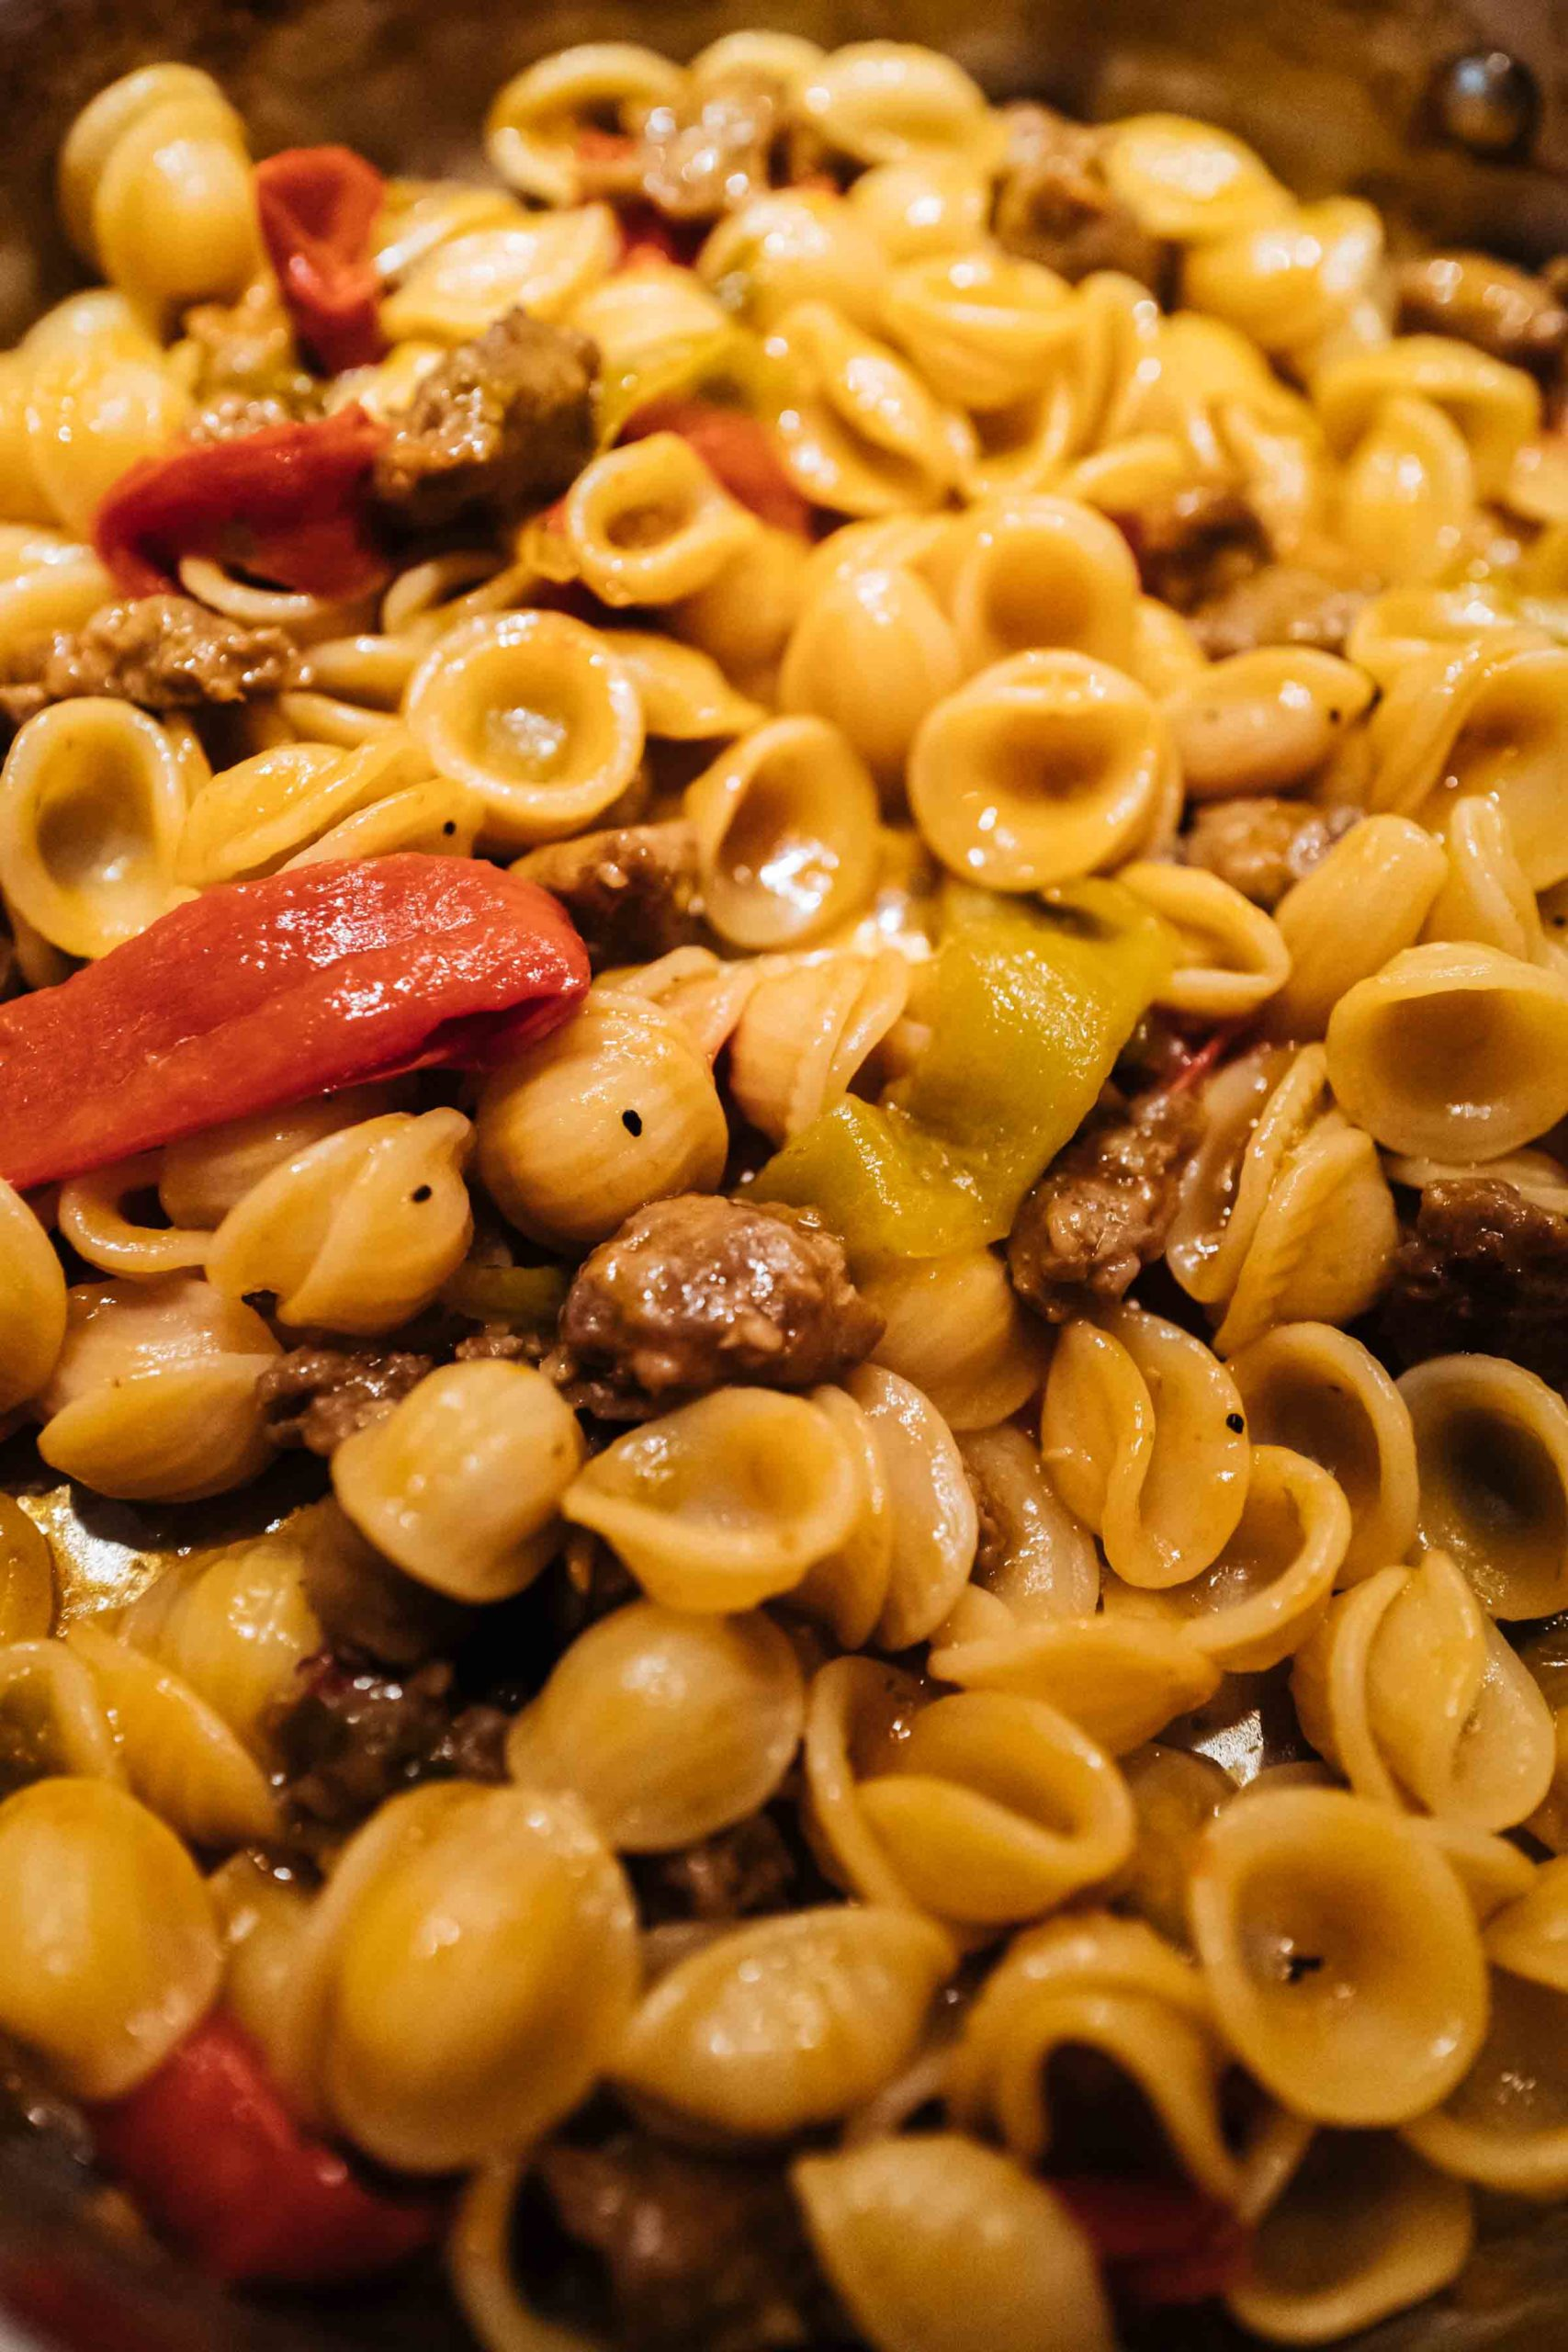 Make this easy Italian Sausage and Pepper Orecchiette Pasta recipe. It's a quick dinner made with orecchiette pasta, garlic, onions, and tomato paste from TheTasteEdit.com #recipe #sausage #pasta